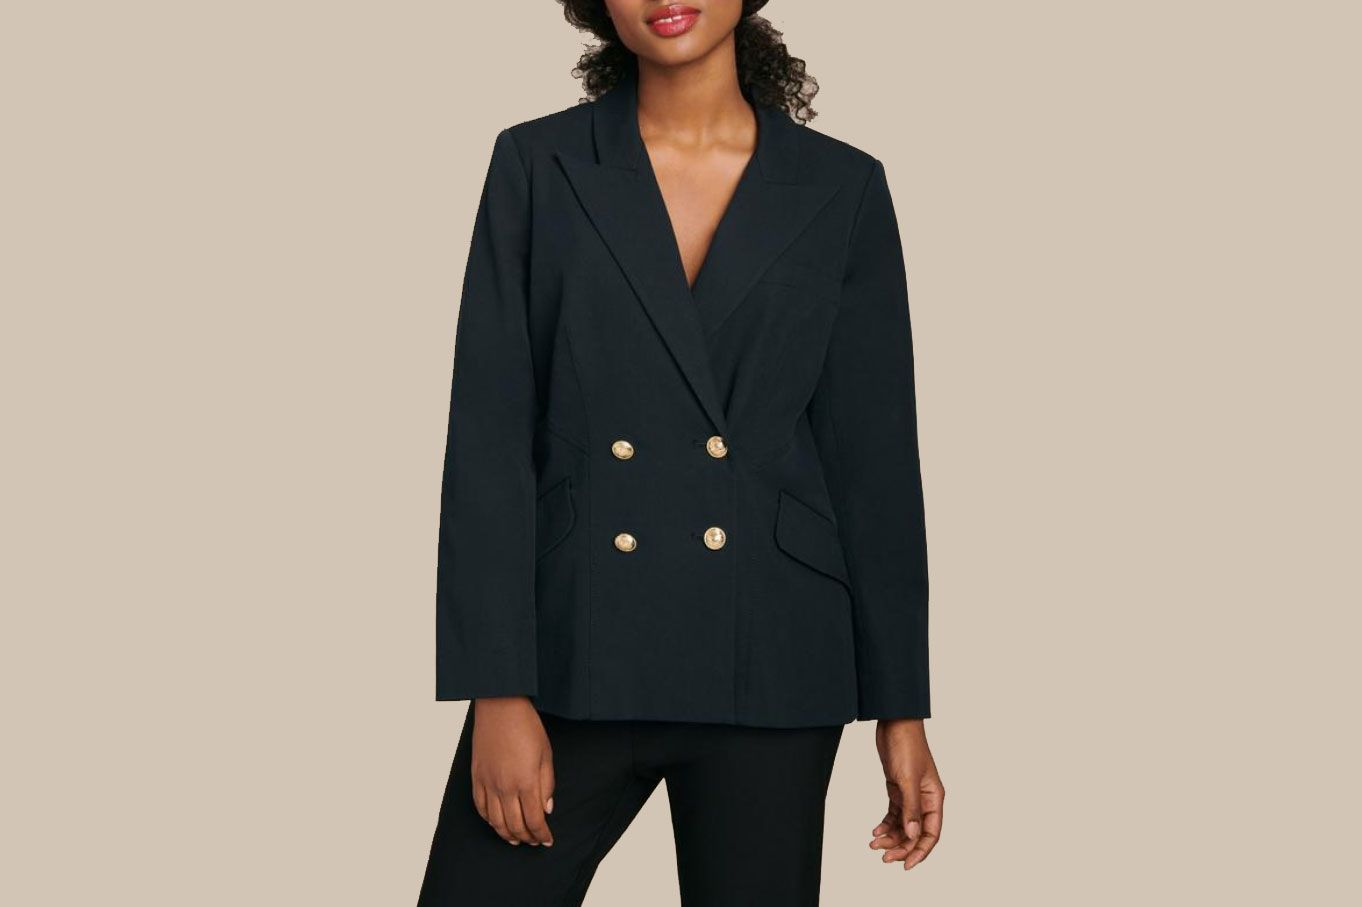 4bc4ea4bde9 The 15 Best Work Blazers for the Professional Woman